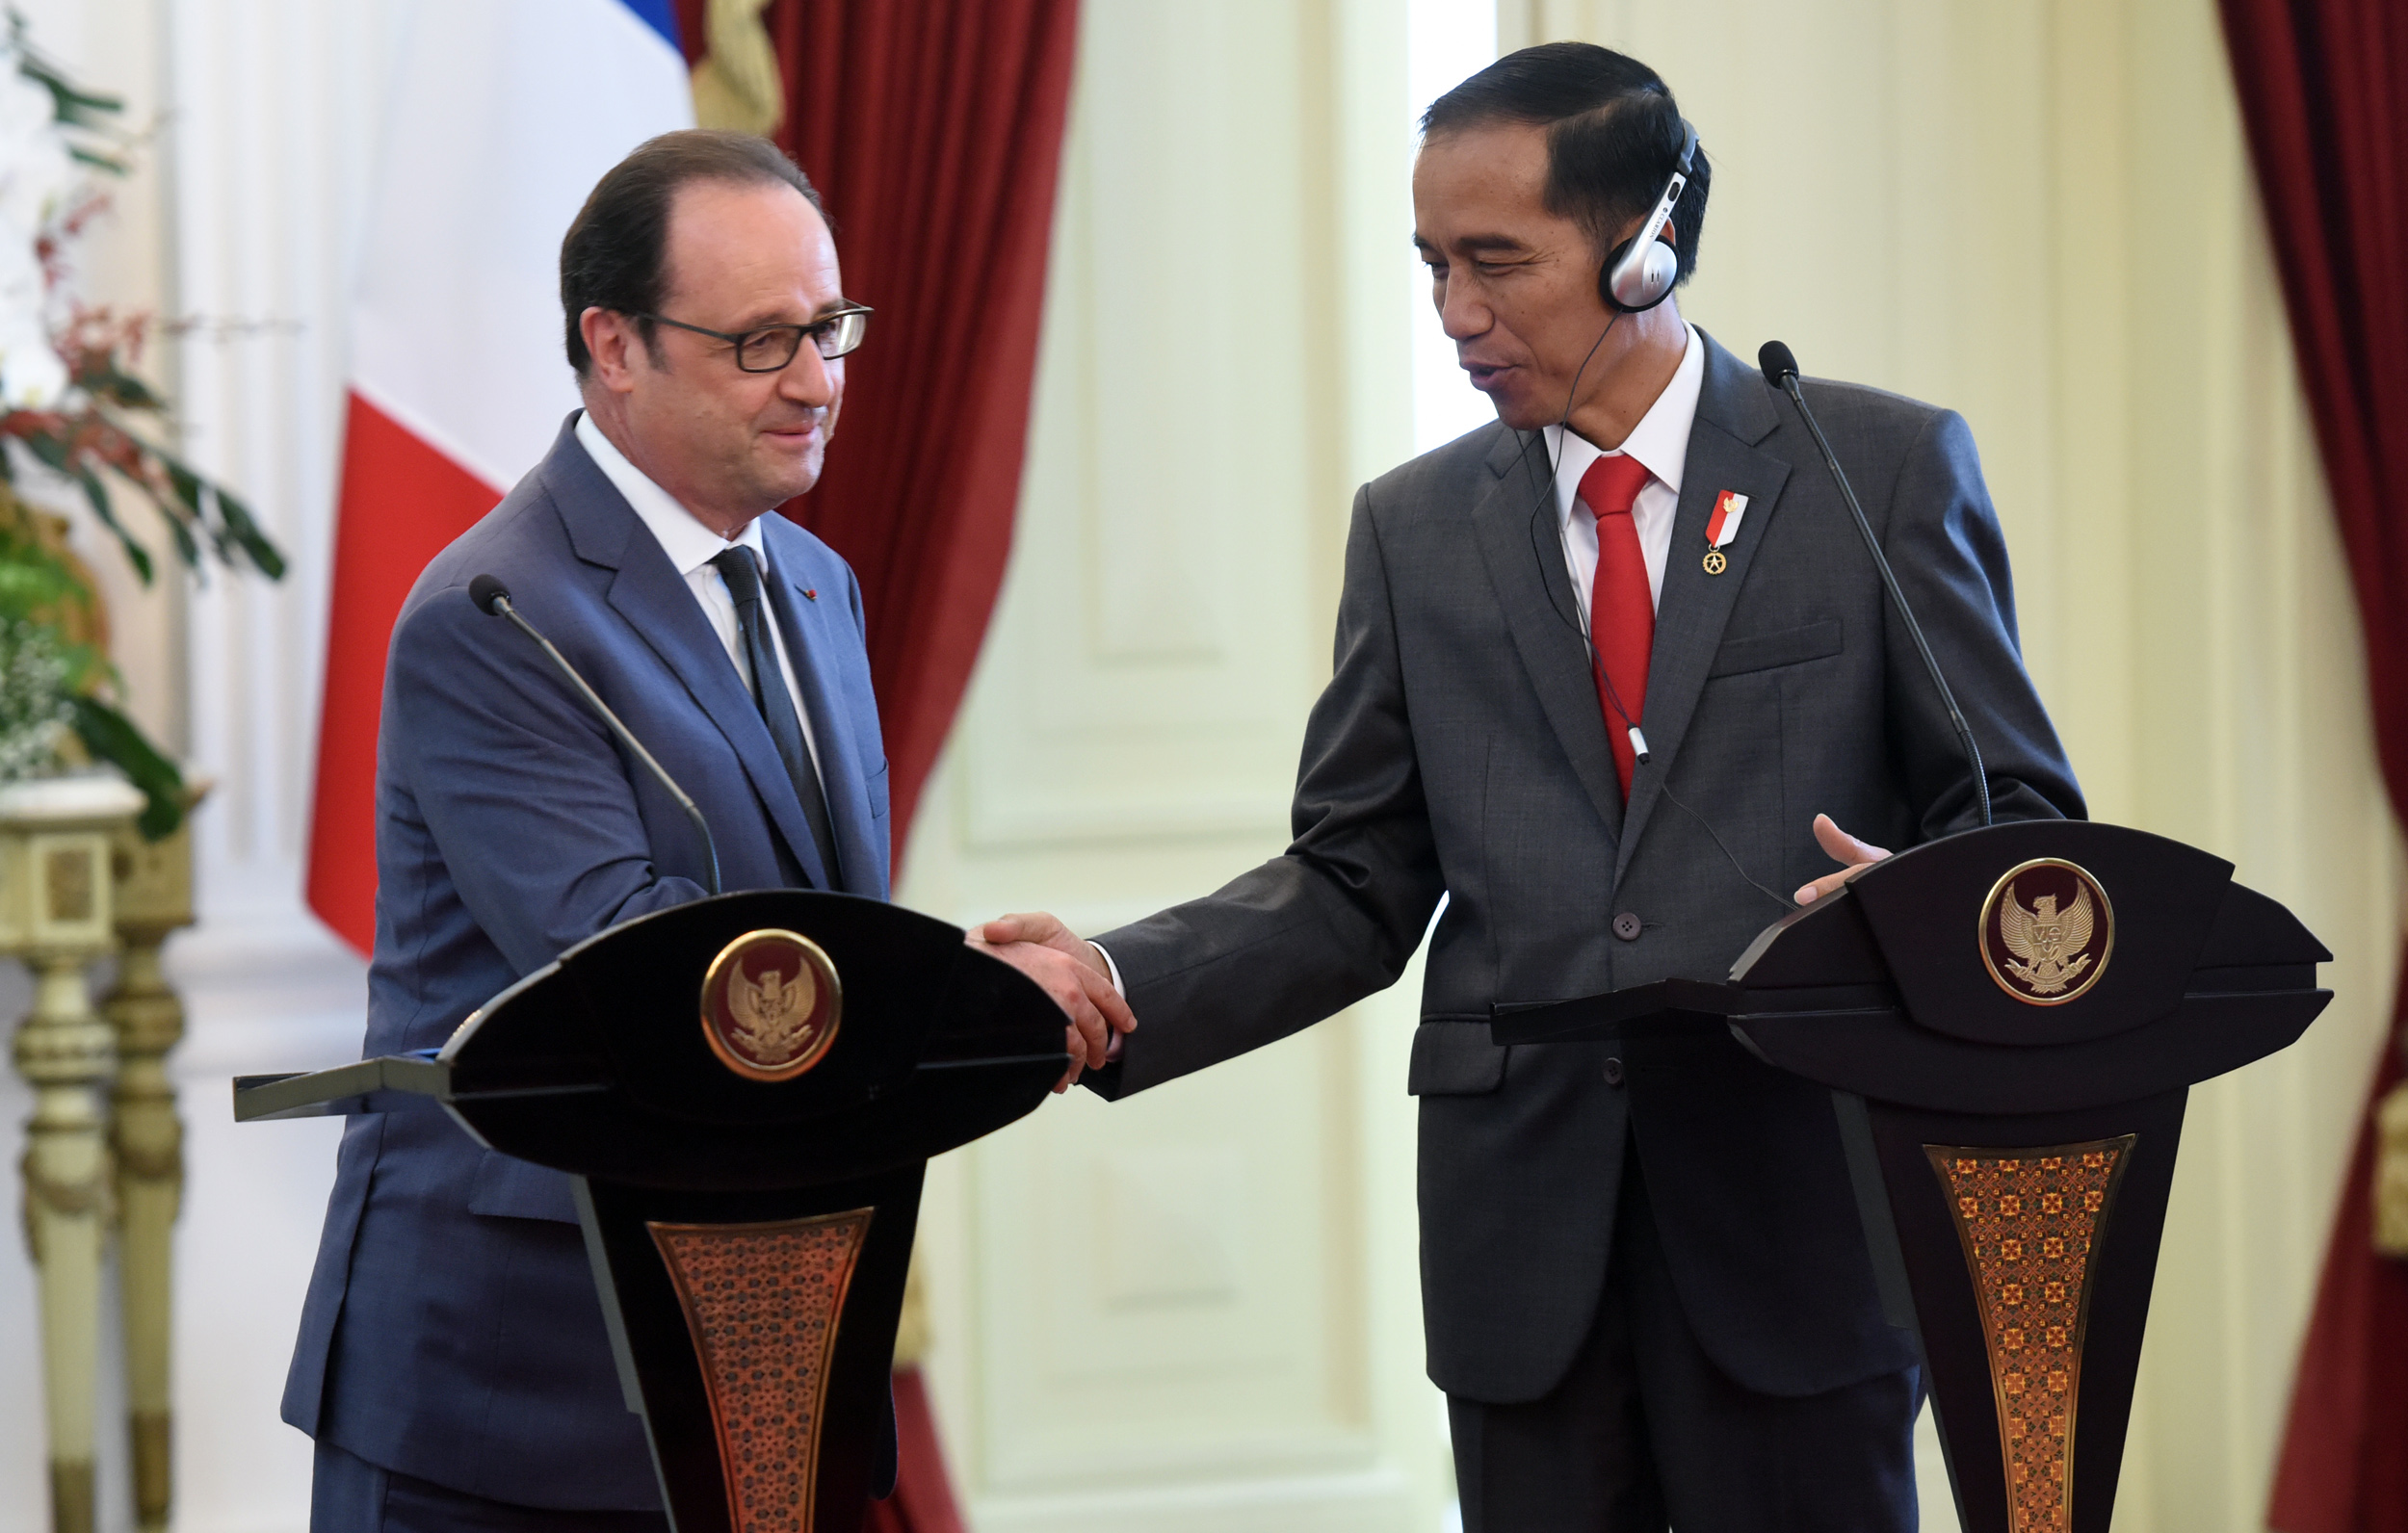 President Jokowi and French President Francois Hollande hold a joint press conference, at the State Palace, Jakarta, Wednesday (29/3) afternoon. (Photo: Rahmat/PR)